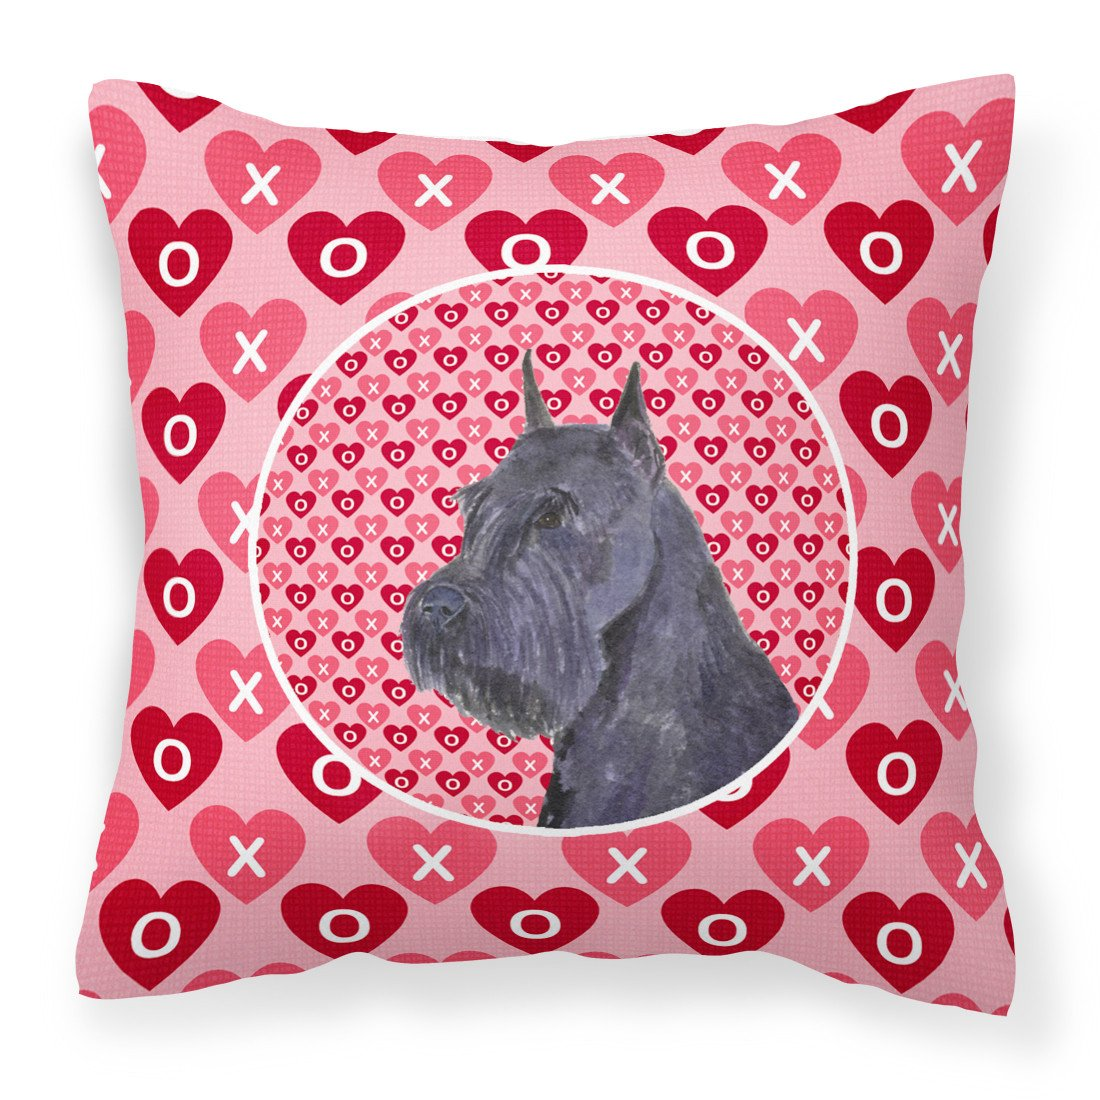 Schnauzer Hearts Love and Valentine's Day Portrait Fabric Decorative Pillow SS4523PW1414 by Caroline's Treasures